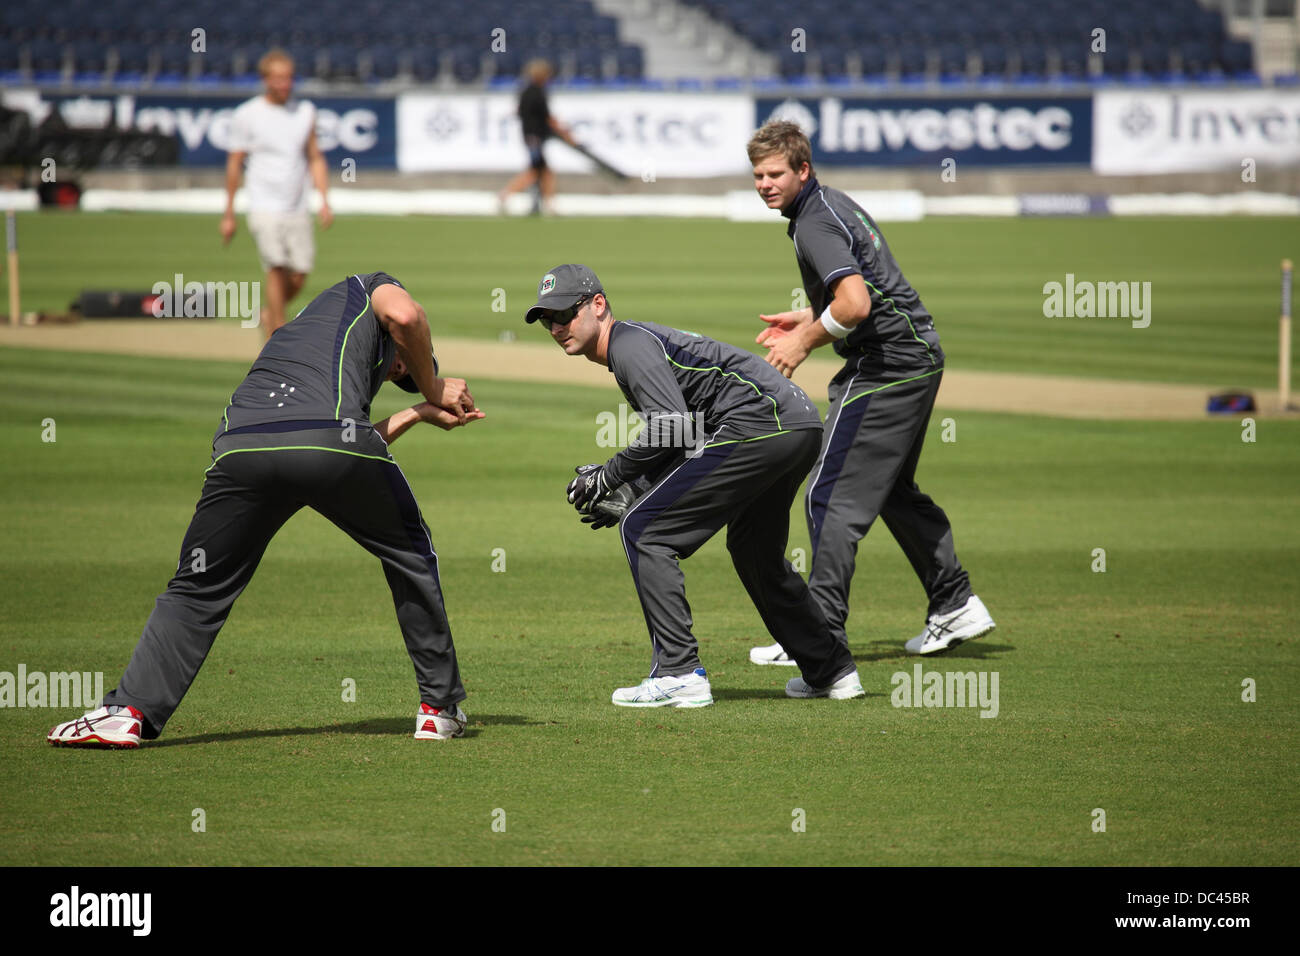 Durham, UK. 08th Aug, 2013. Australian players fielding in the slips during Australia's training session at - Stock Image